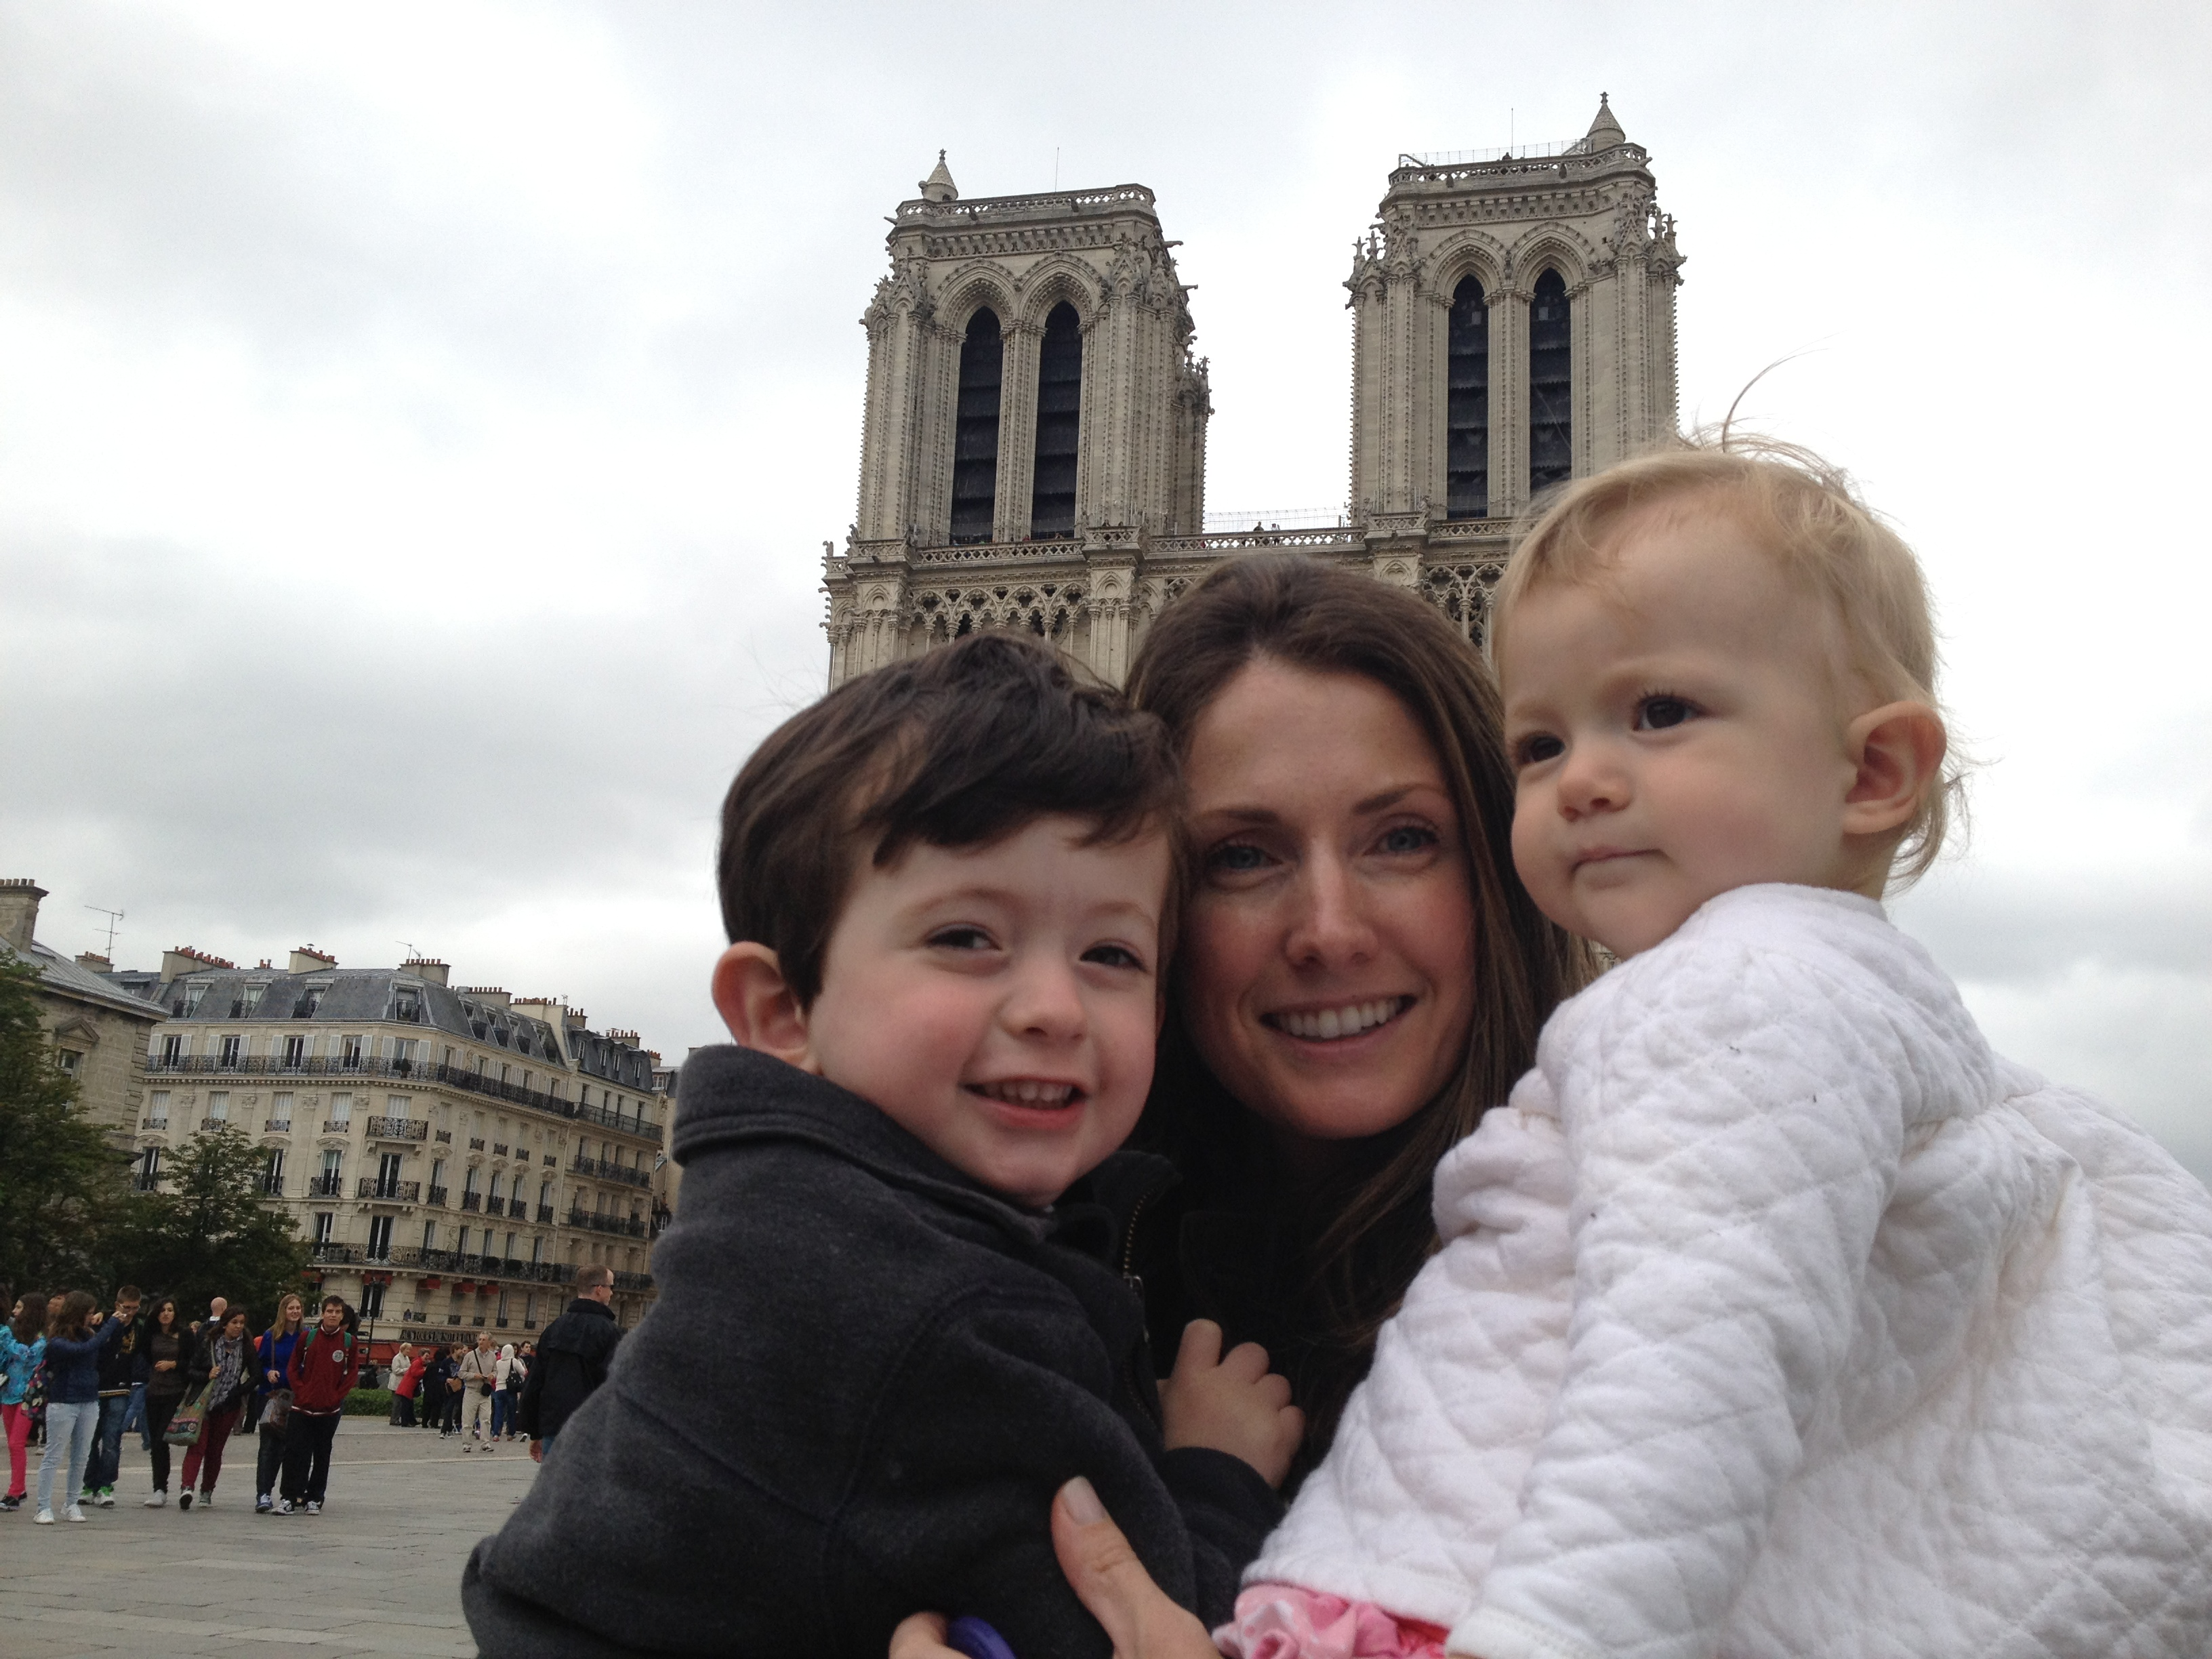 Princess Ivana Pignatelli with her son and daughter on vacation in Paris